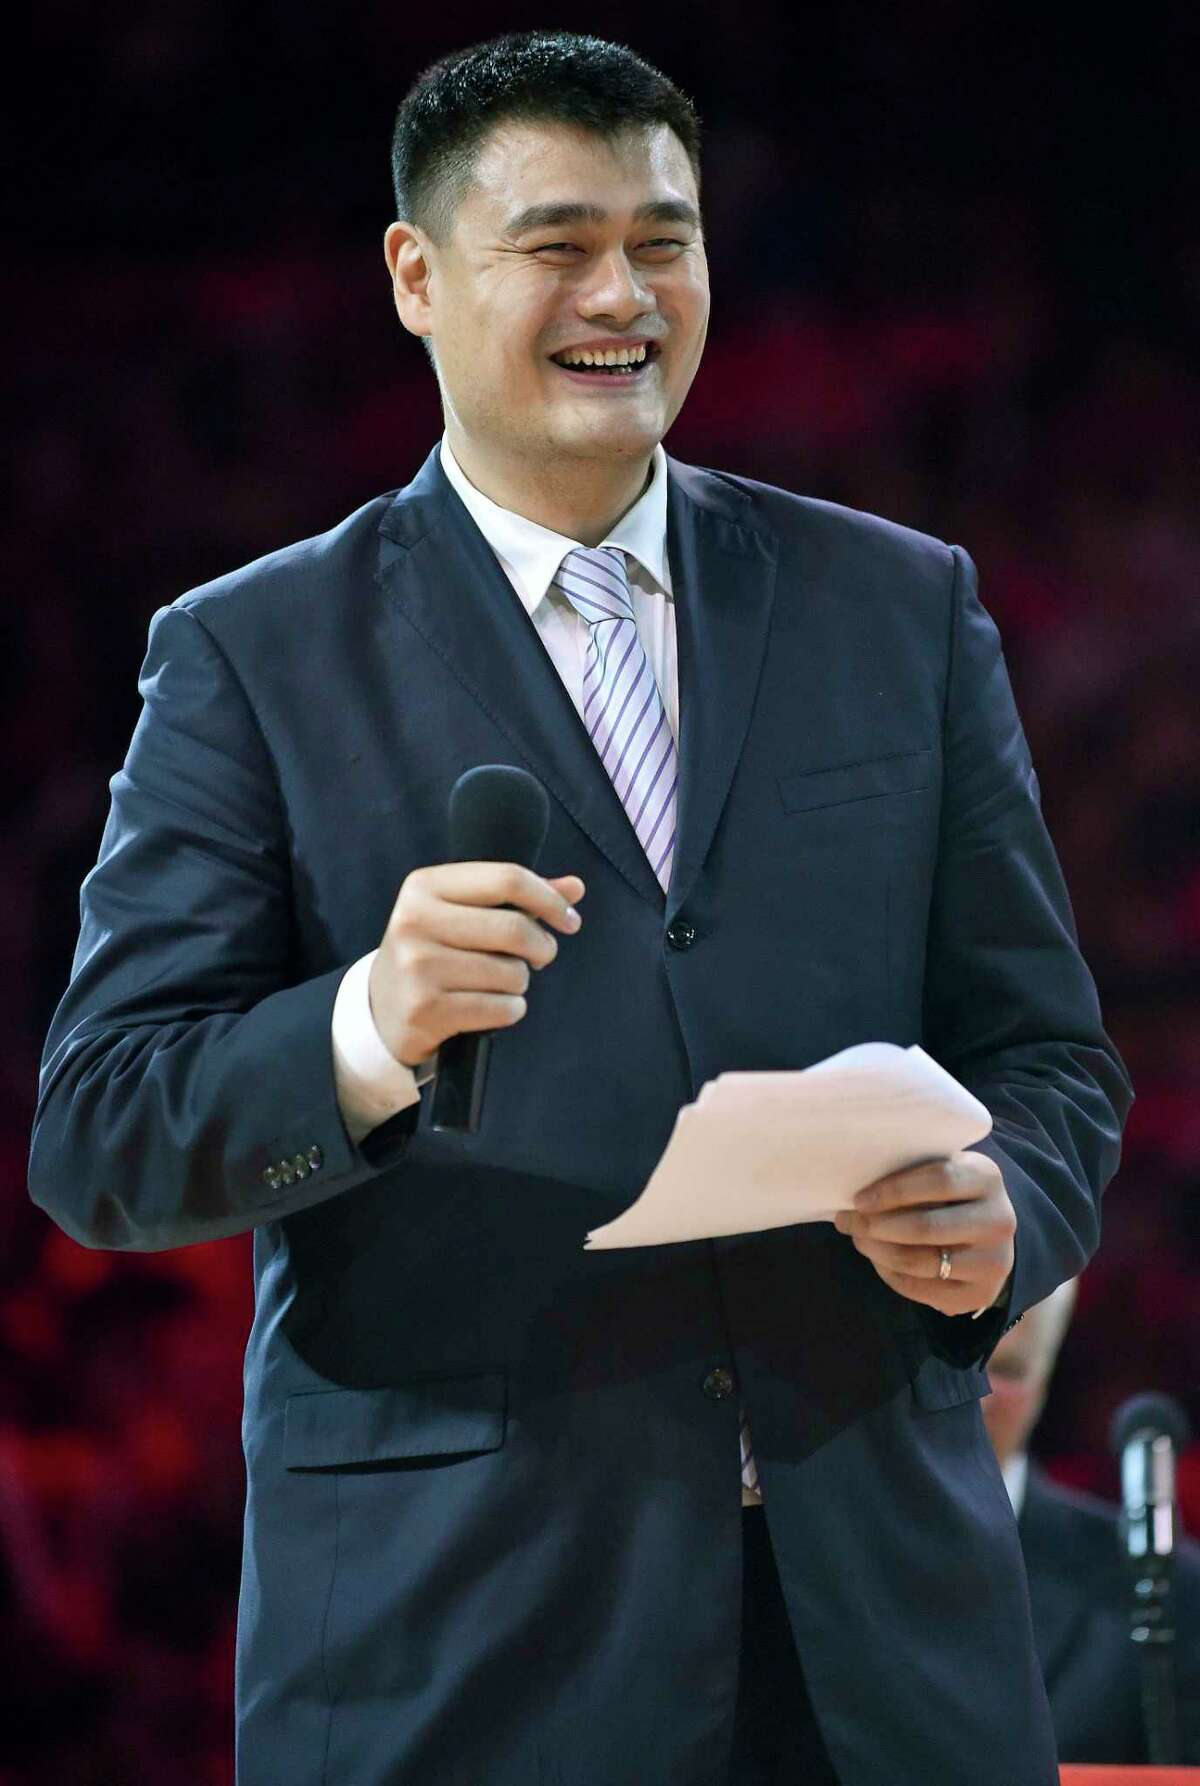 FILE - In this Friday, Feb. 3, 2017 file photo, retired Houston Rockets center Yao Ming speaks during his jersey number retirement ceremony at halftime of an NBA basketball game between the Rockets and the Chicago Bulls in Houston. The Chinese Basketball Association has voted unanimously to appoint NBA Hall of Famer Yao as its new president. (AP Photo/Eric Christian Smith, File)